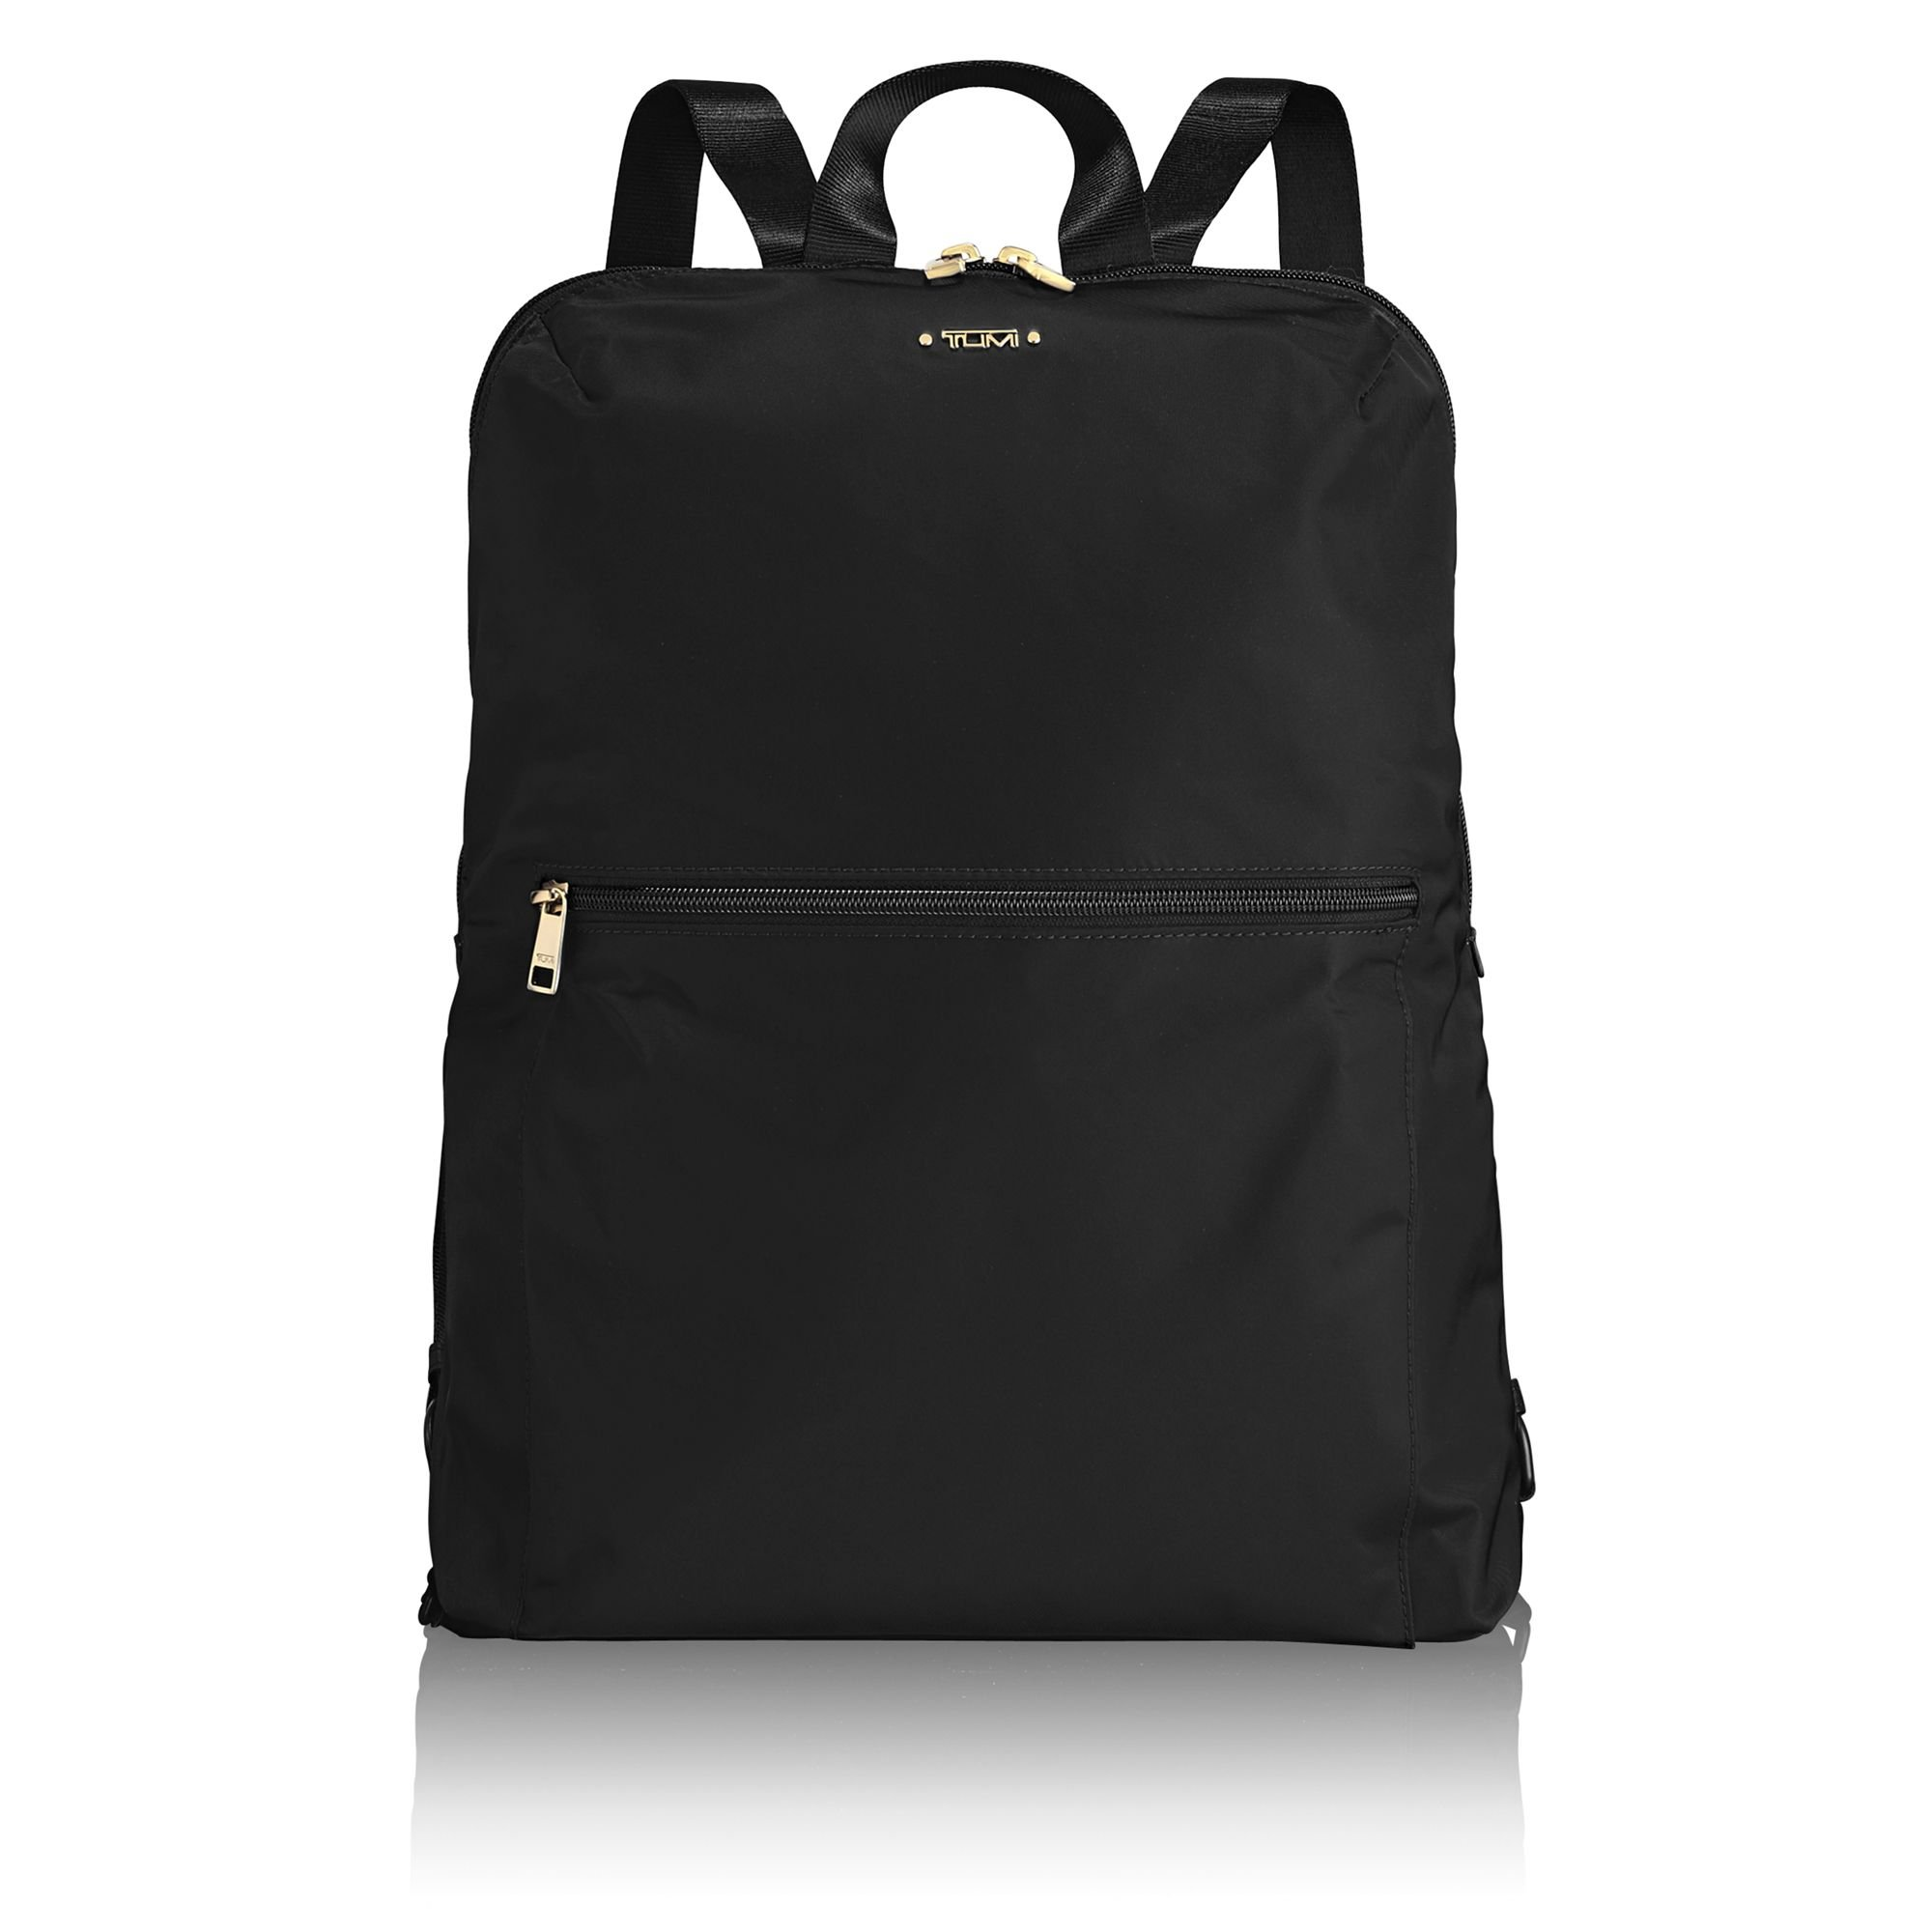 Tumi Women's Just In Case Backpack